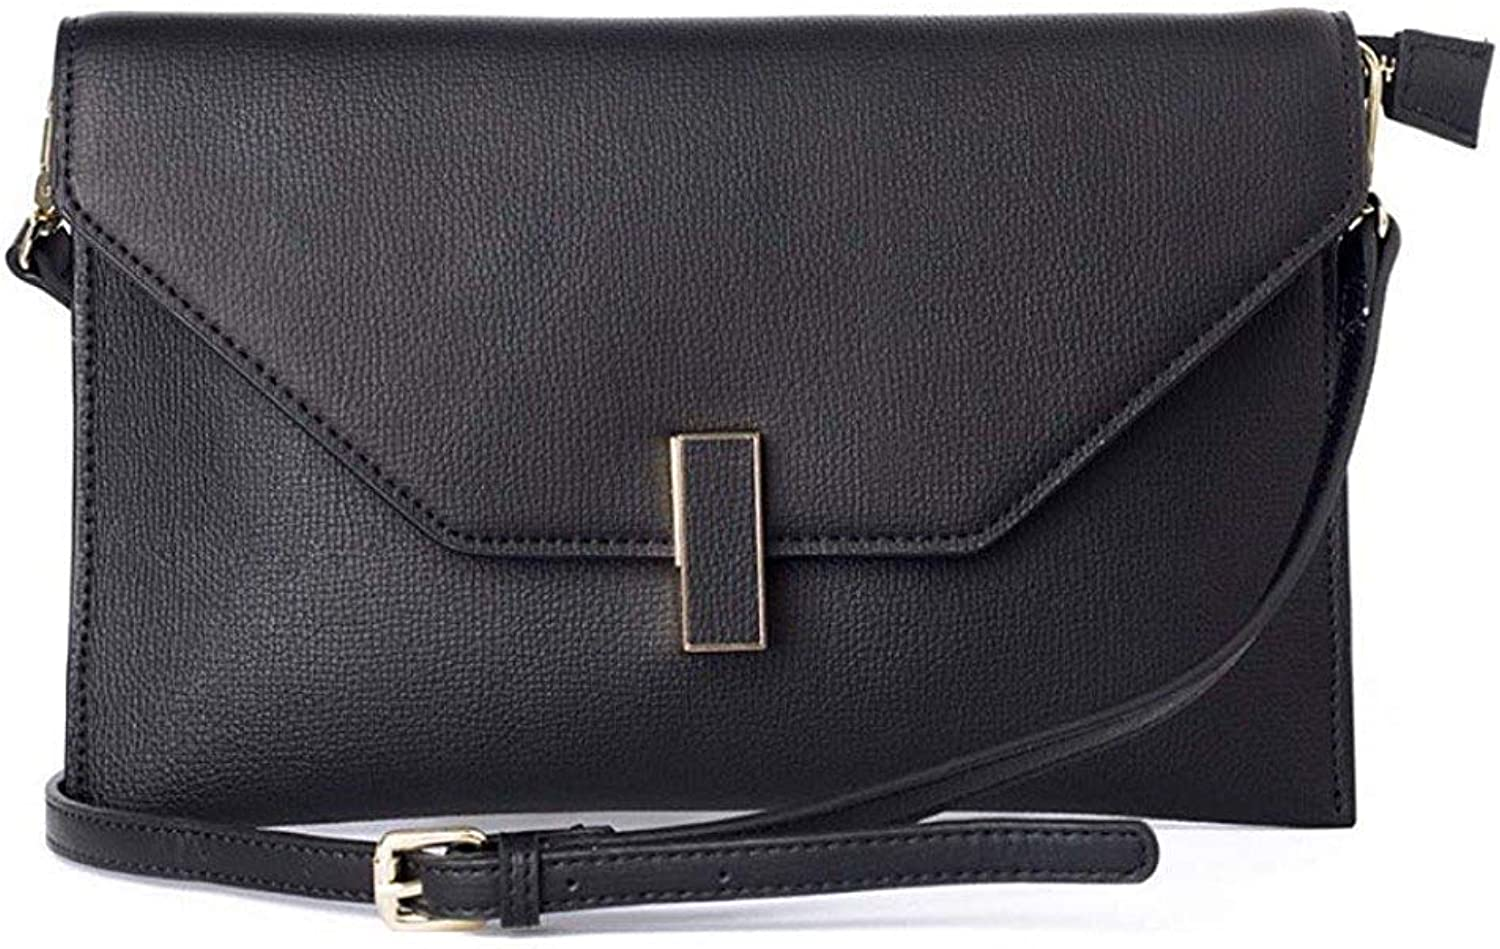 Ladies Handbag Lady Clutch Fashion Shoulder Fashion Cross Body Bag (color   Black, Size   One Size)